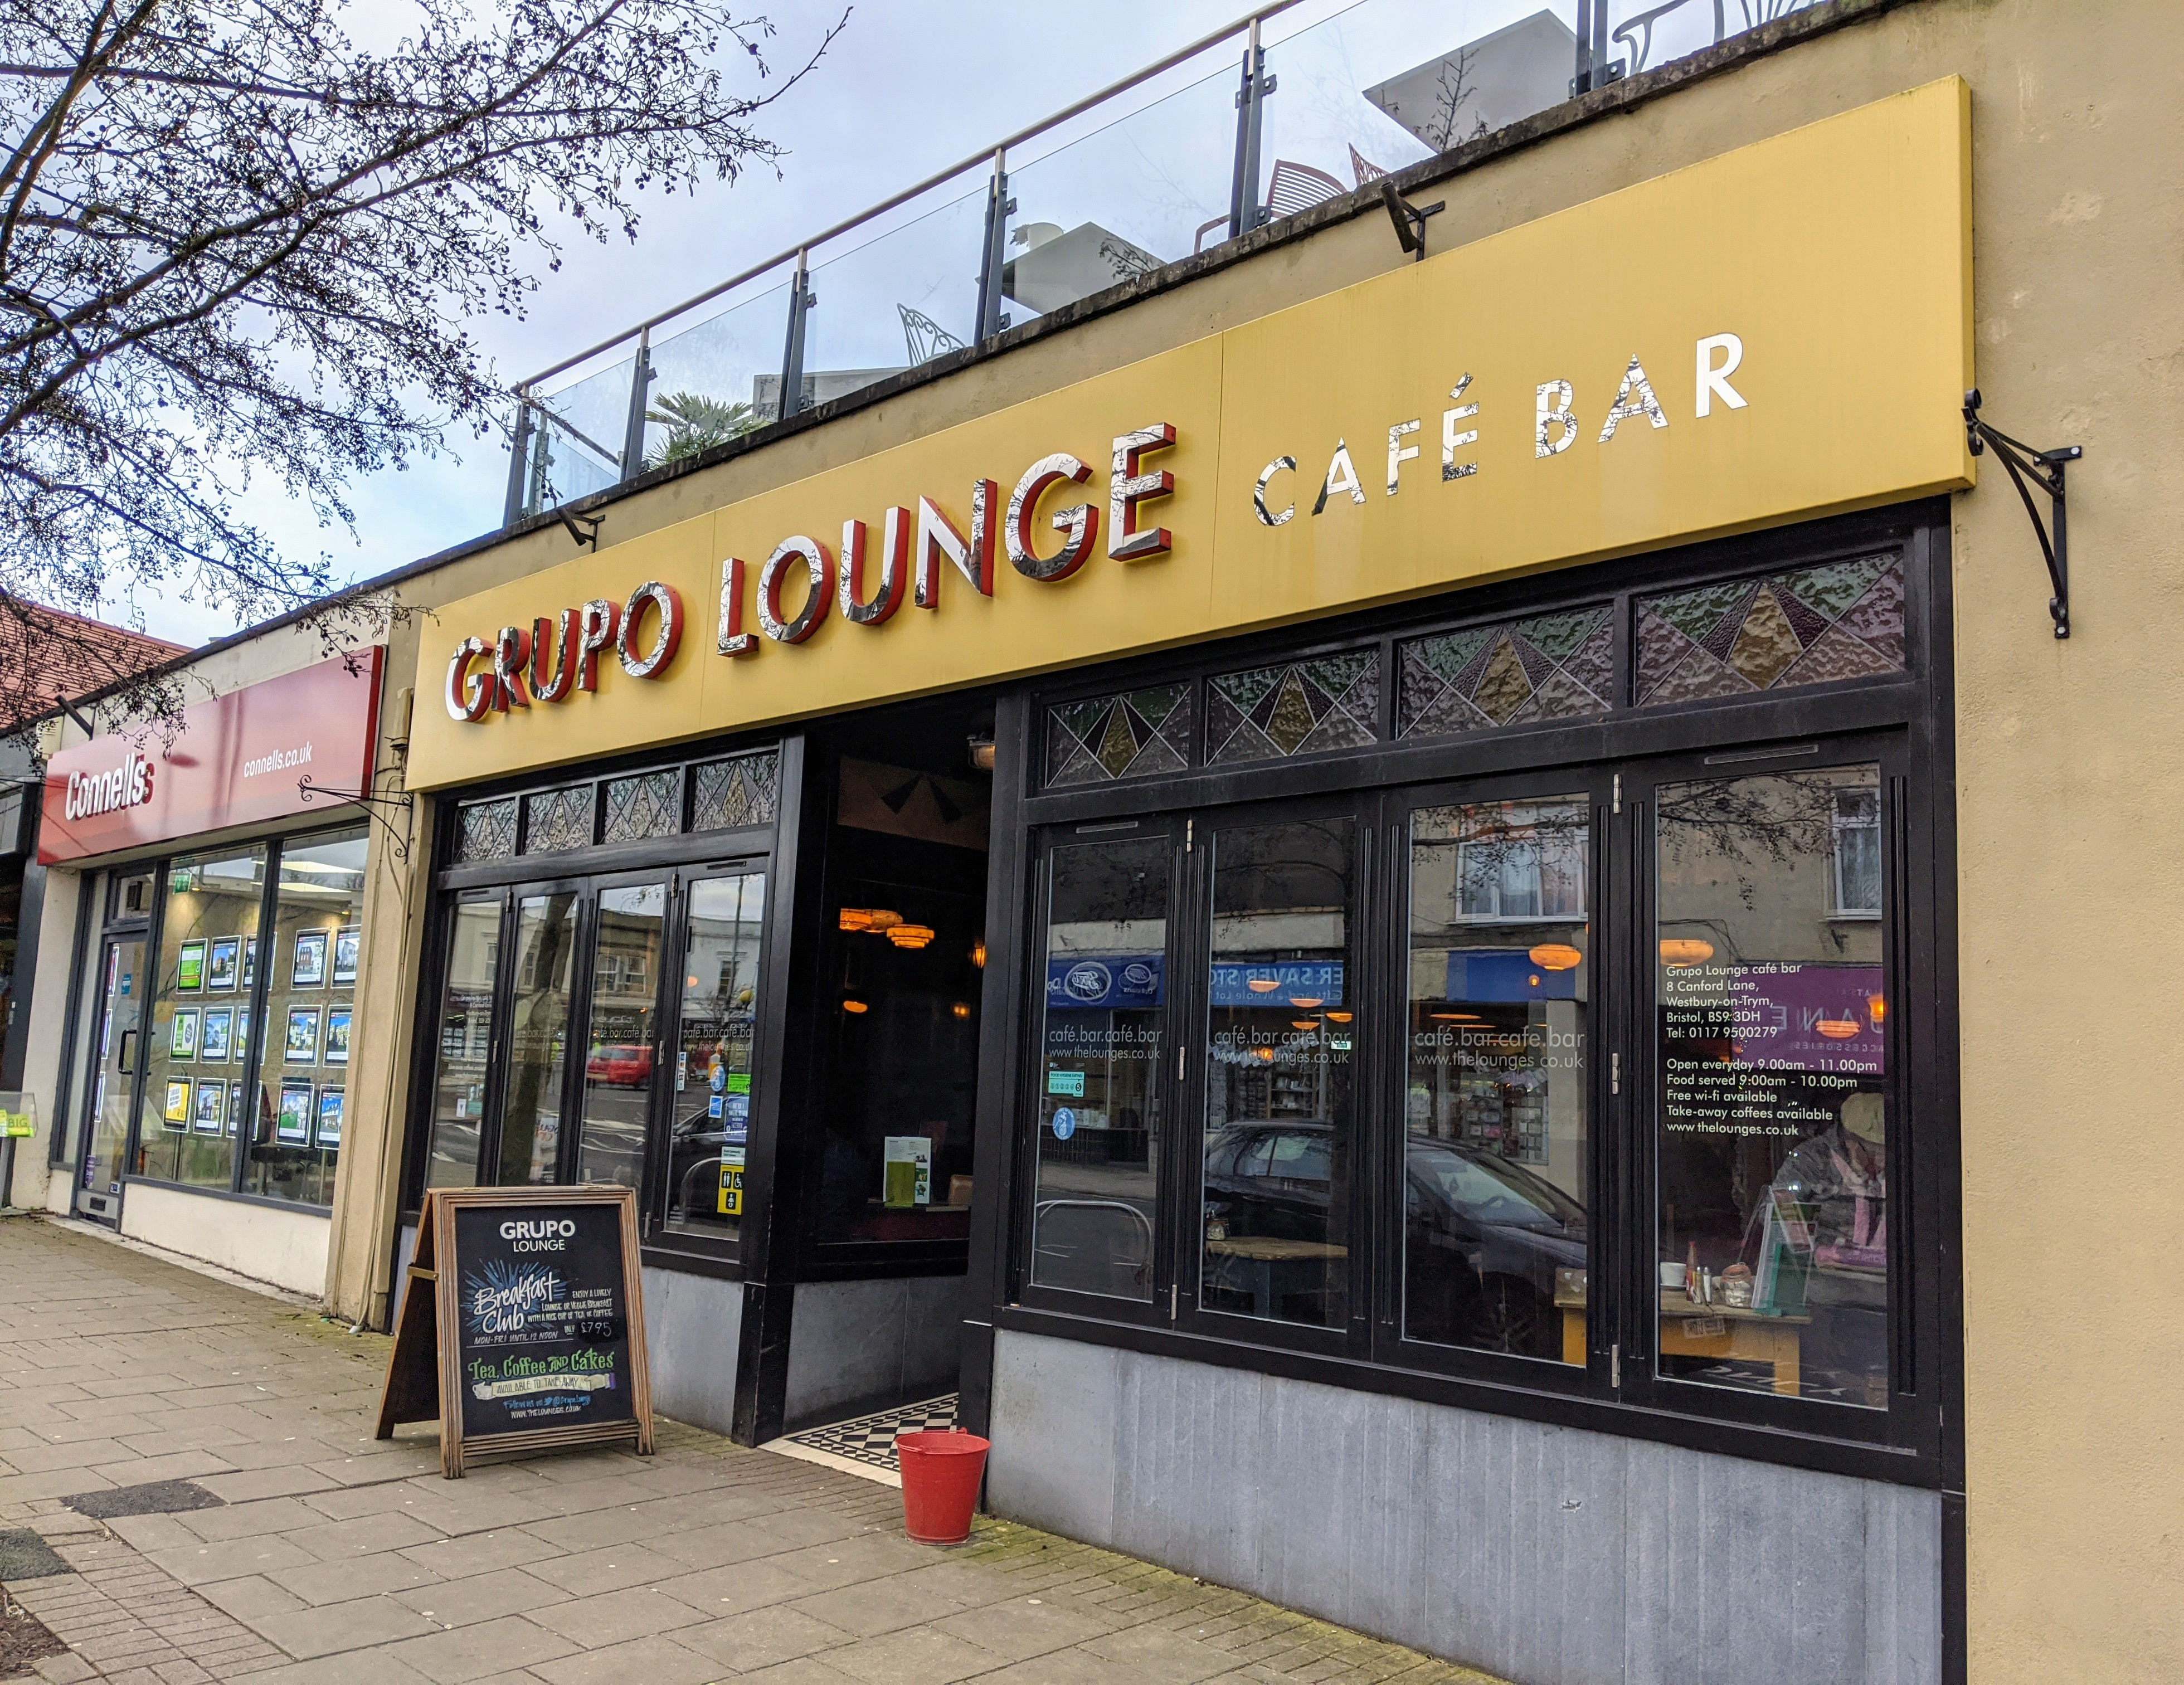 Things to do in Westbury-on-Trym image 5 Group Lounge